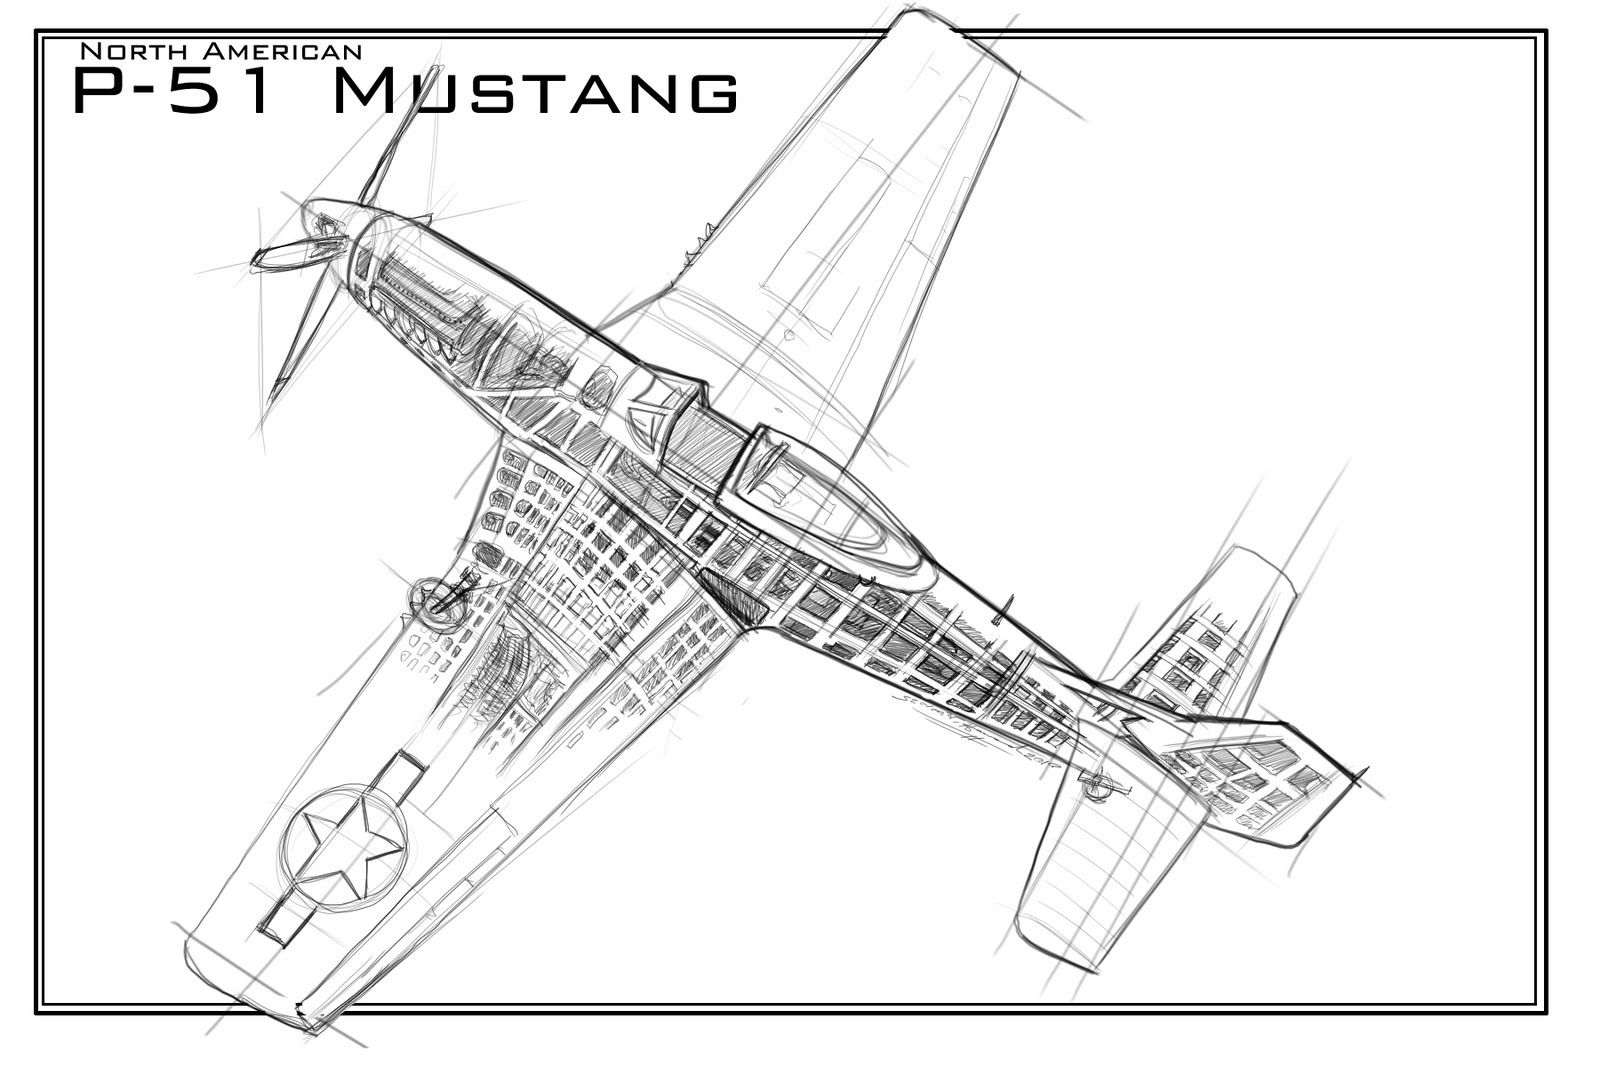 Mustang Plane Coloring Pages - Jesyscioblin